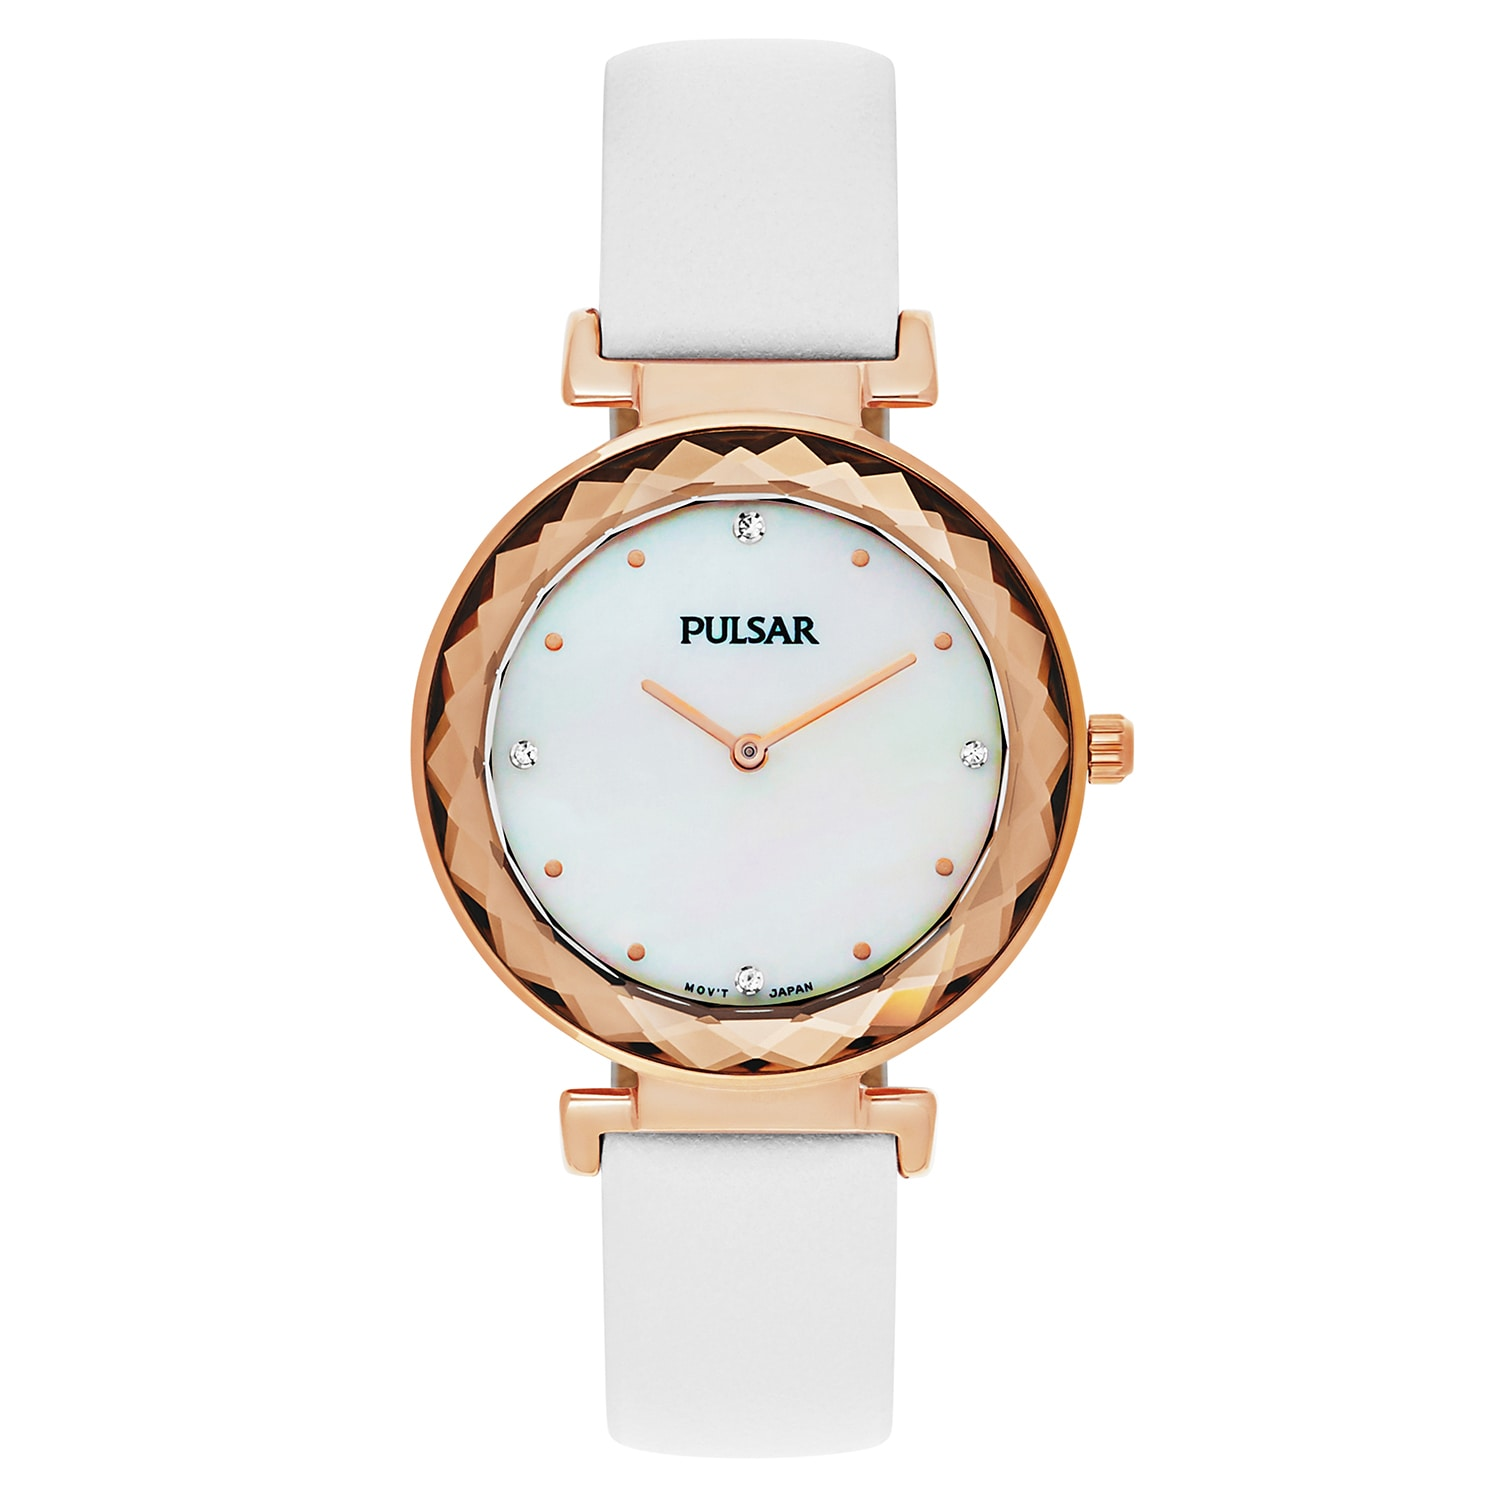 PULSAR Night Out Women's Mother of Pearl Leather Strap Wa...